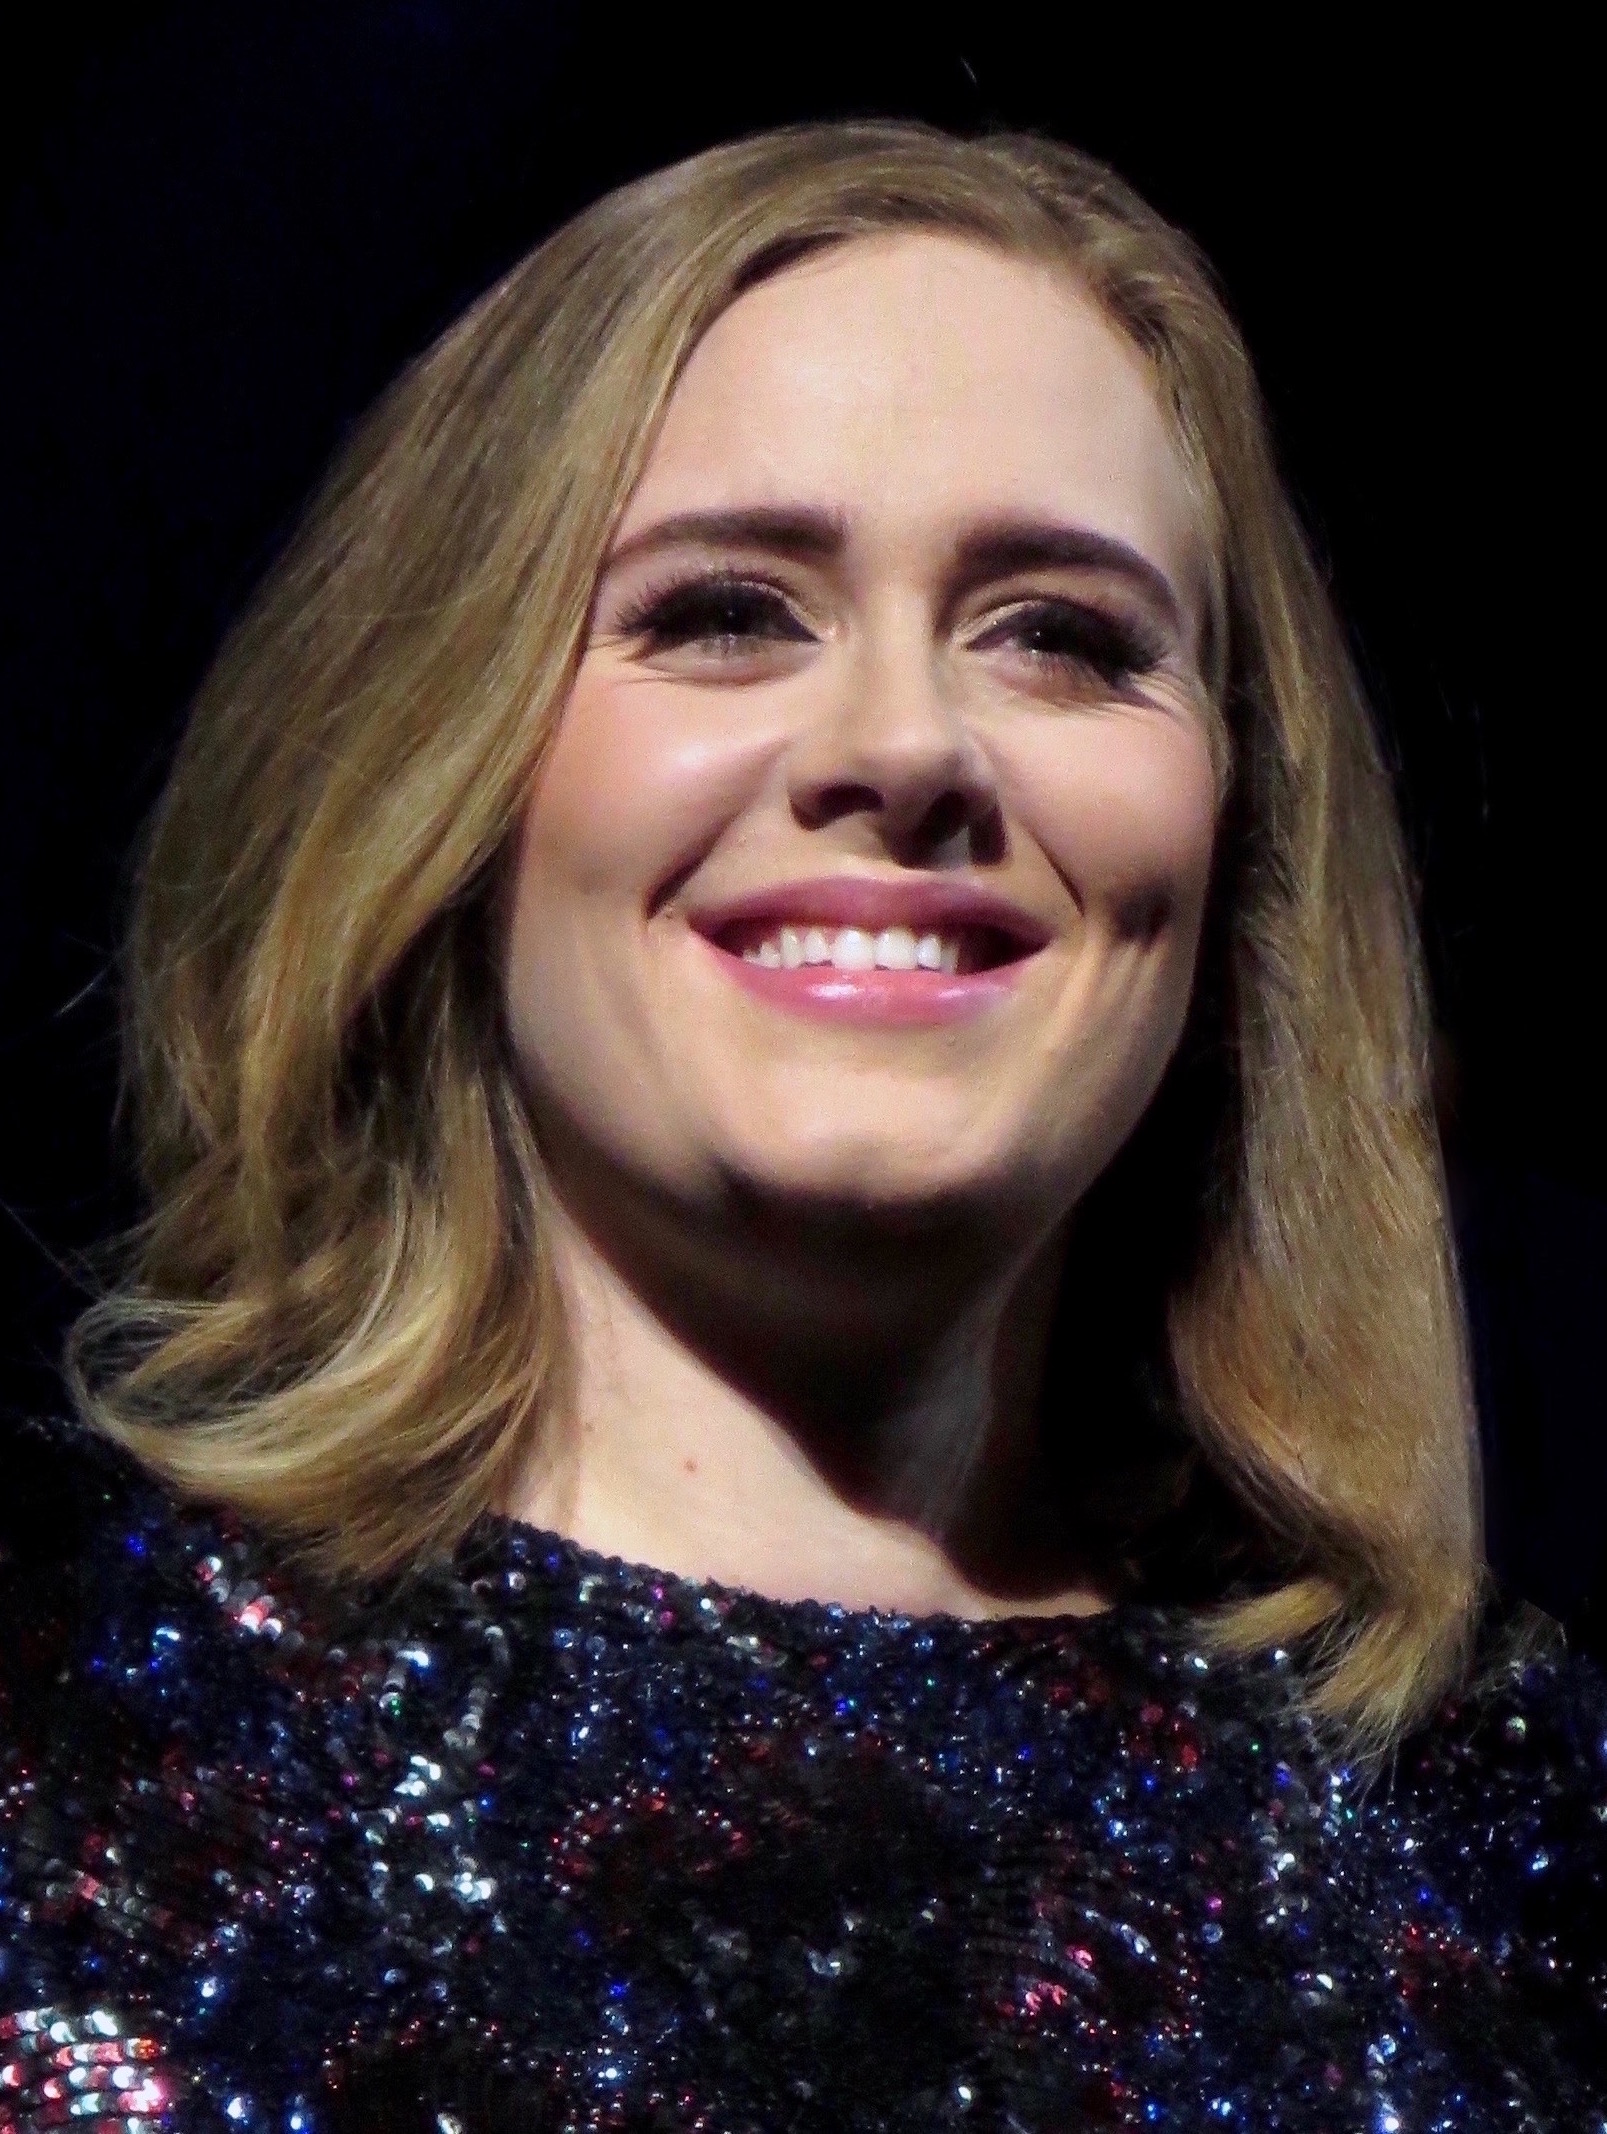 The 31-year old daughter of father Mark Evans and mother Penny Adkins Adele in 2019 photo. Adele earned a 7 million dollar salary - leaving the net worth at 185 million in 2019